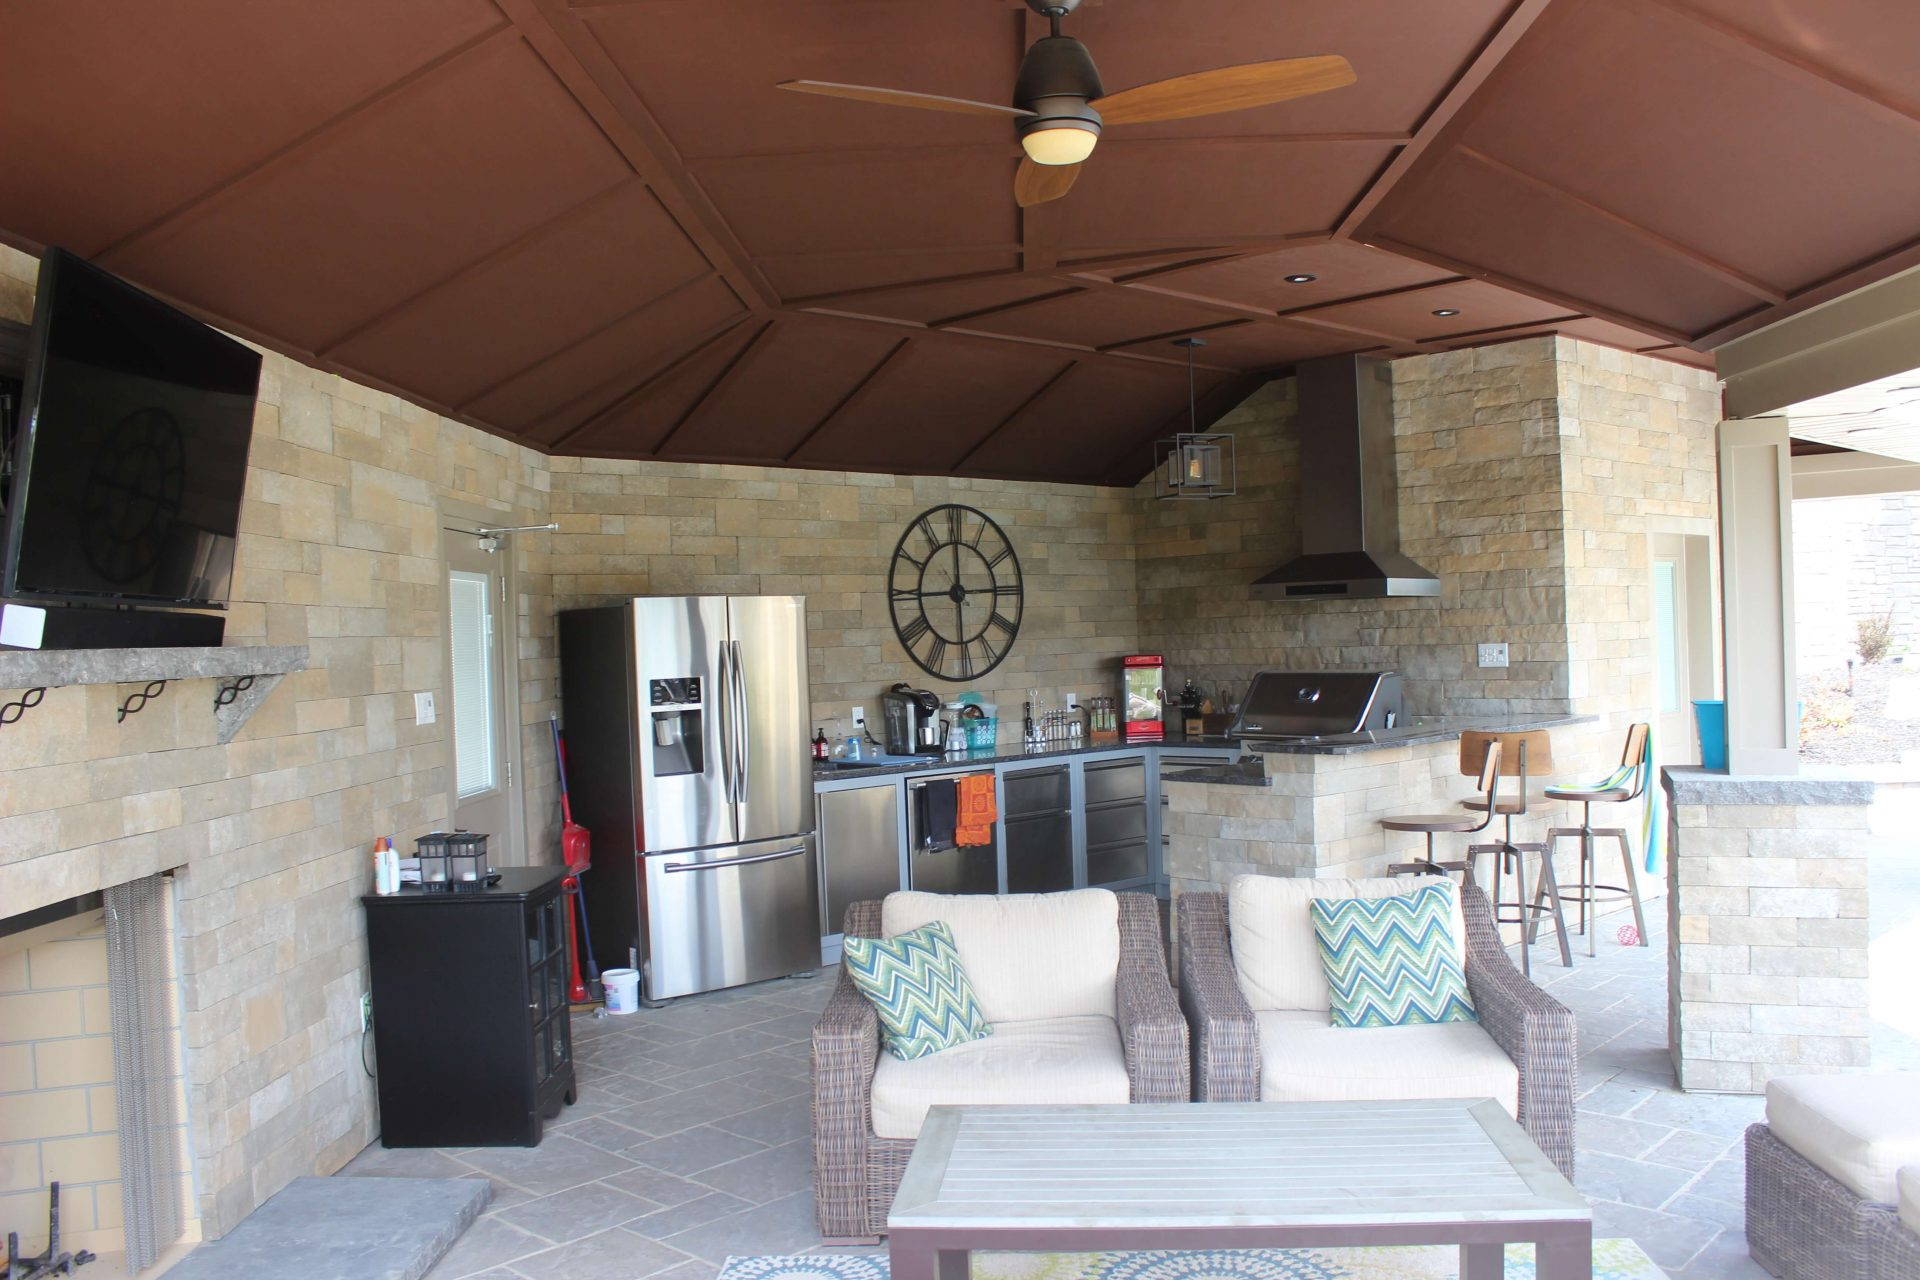 Inside pool house lounge area and kitchen